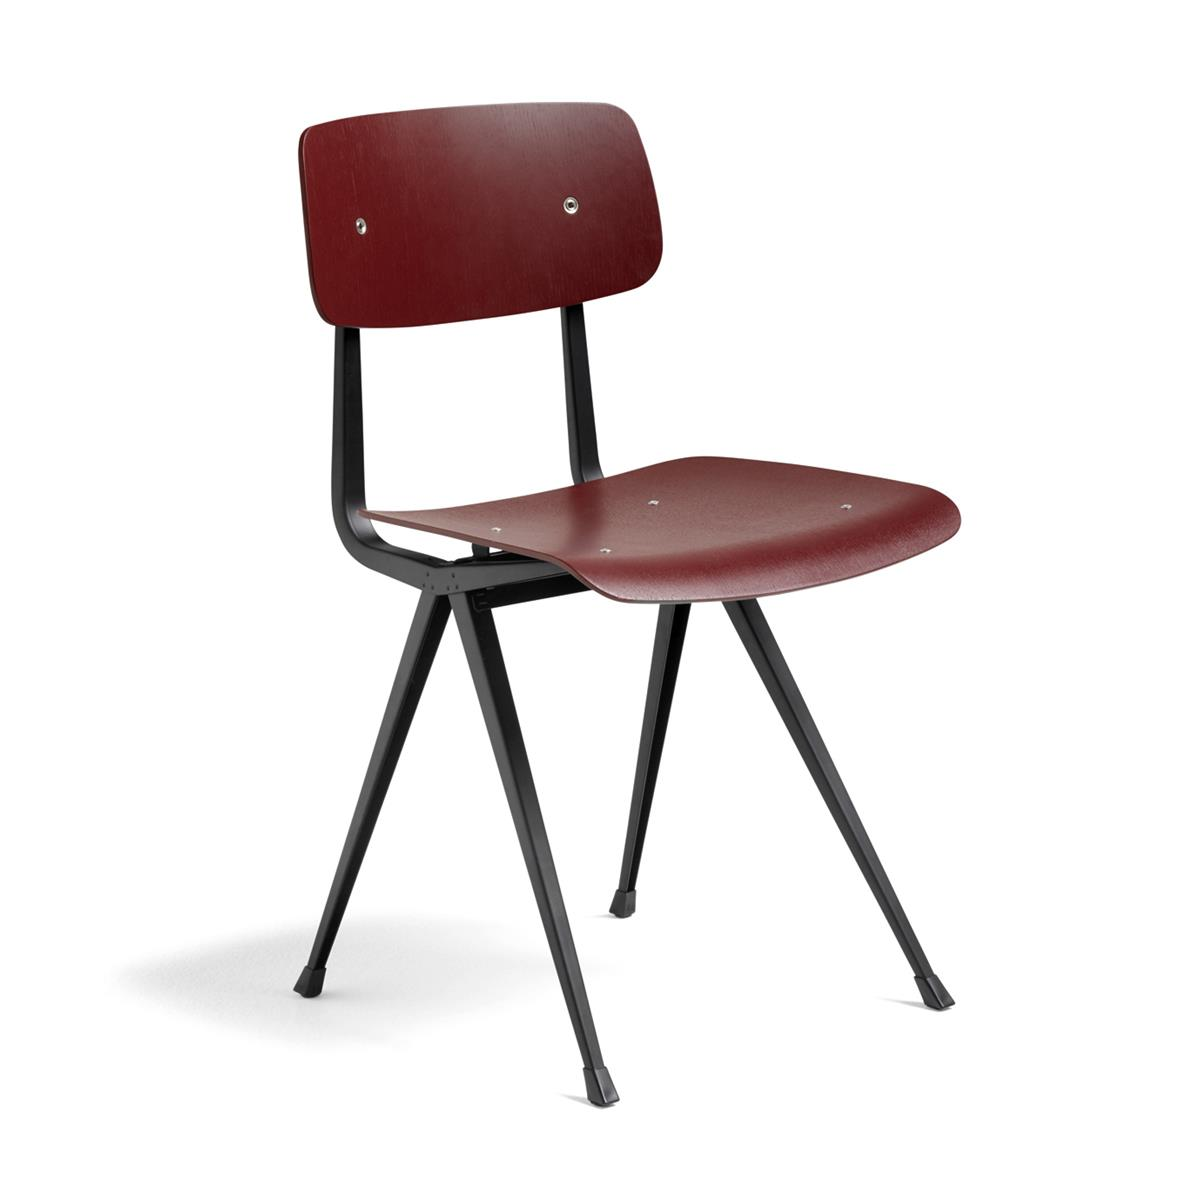 Result Chair - Dark Brick & Black